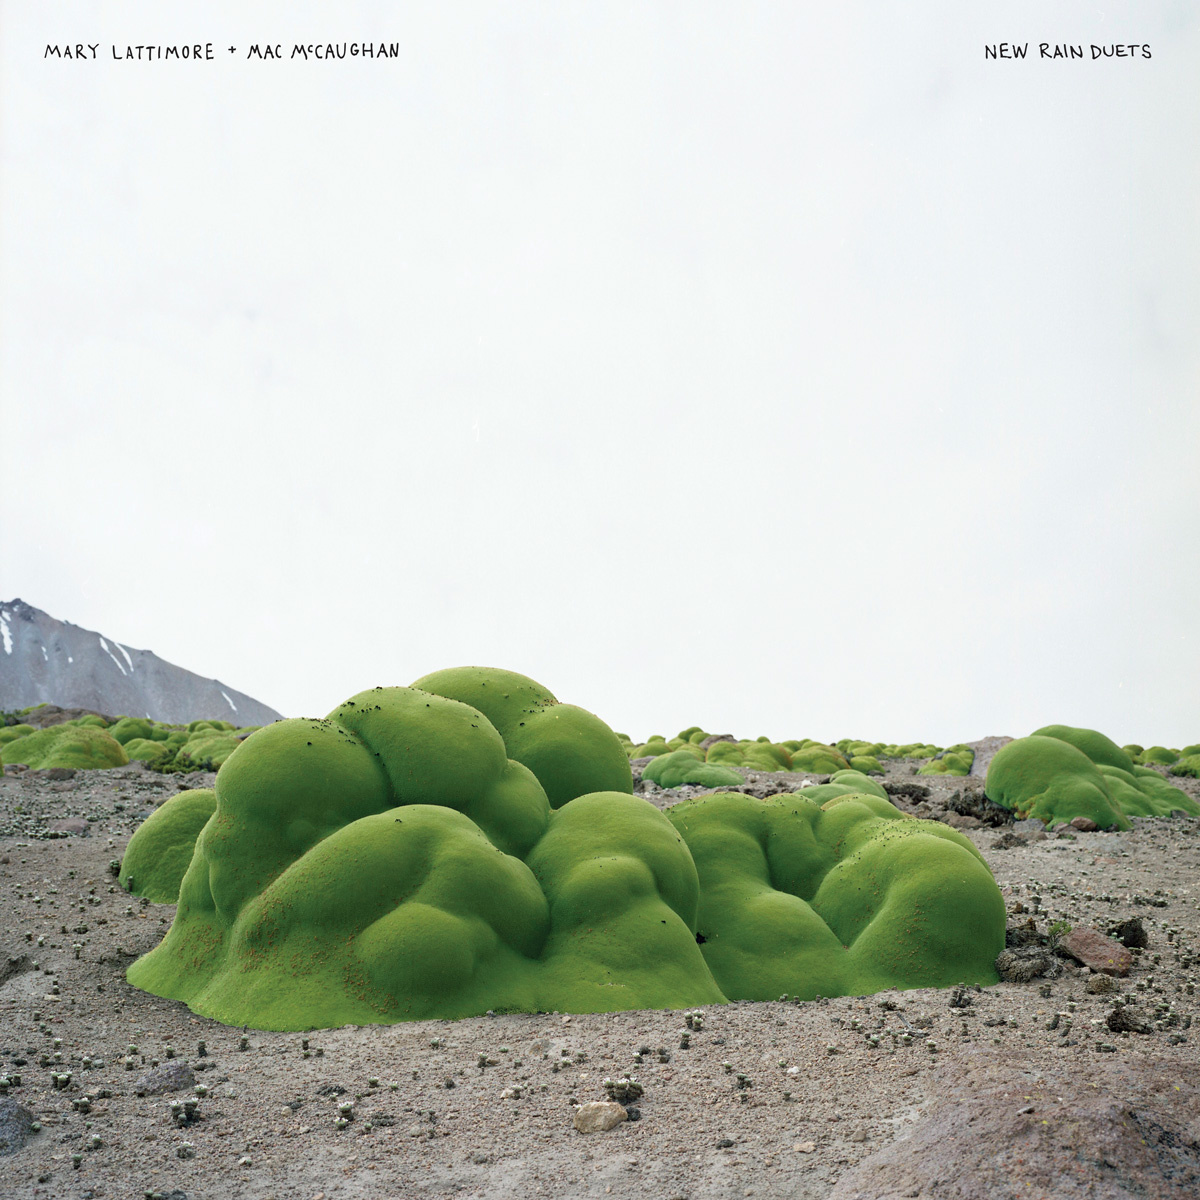 Mary Lattimore and Mac McCaughan Unveil Their Minimal Explorations